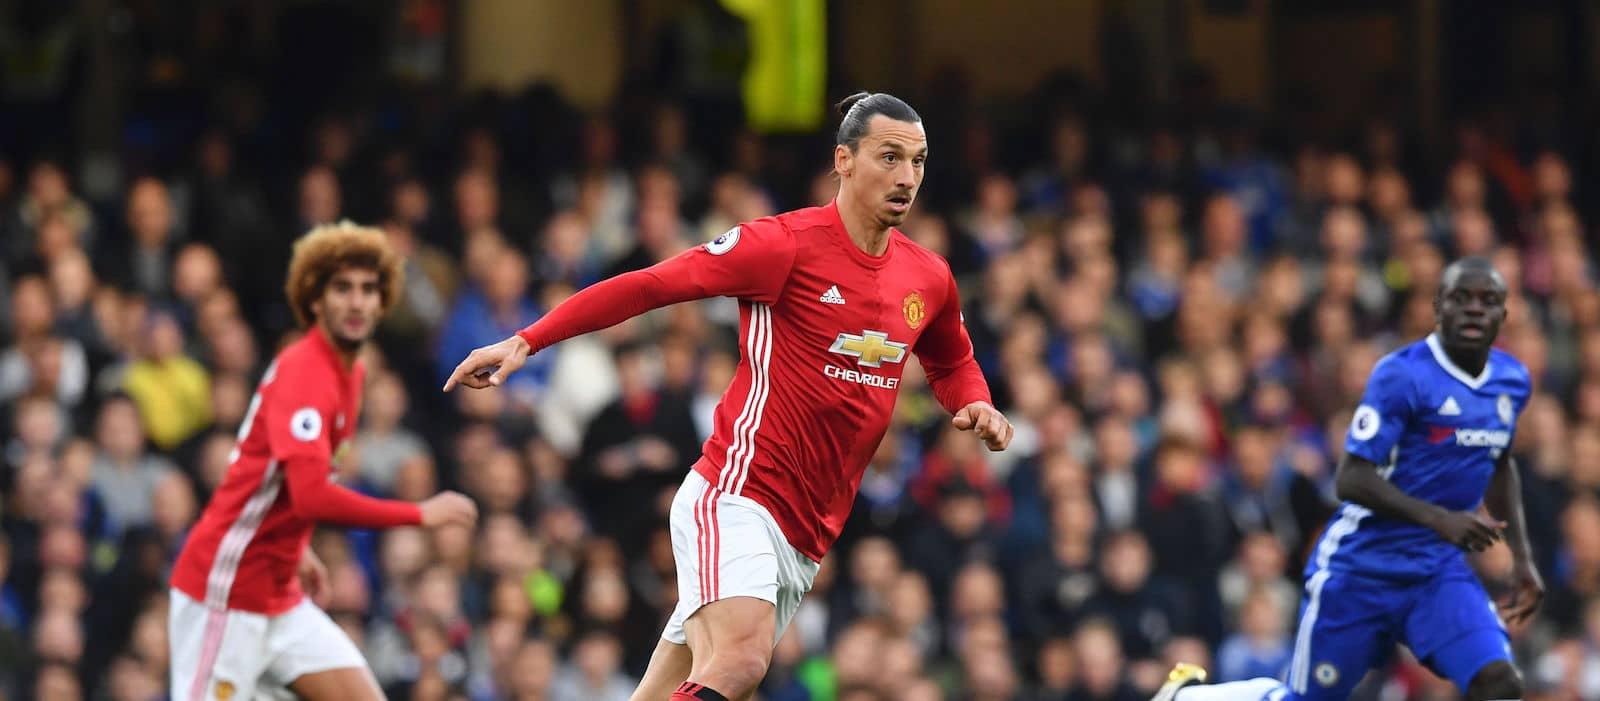 Gordon McQueen: Zlatan Ibrahimovic is not good enough to play at Manchester United